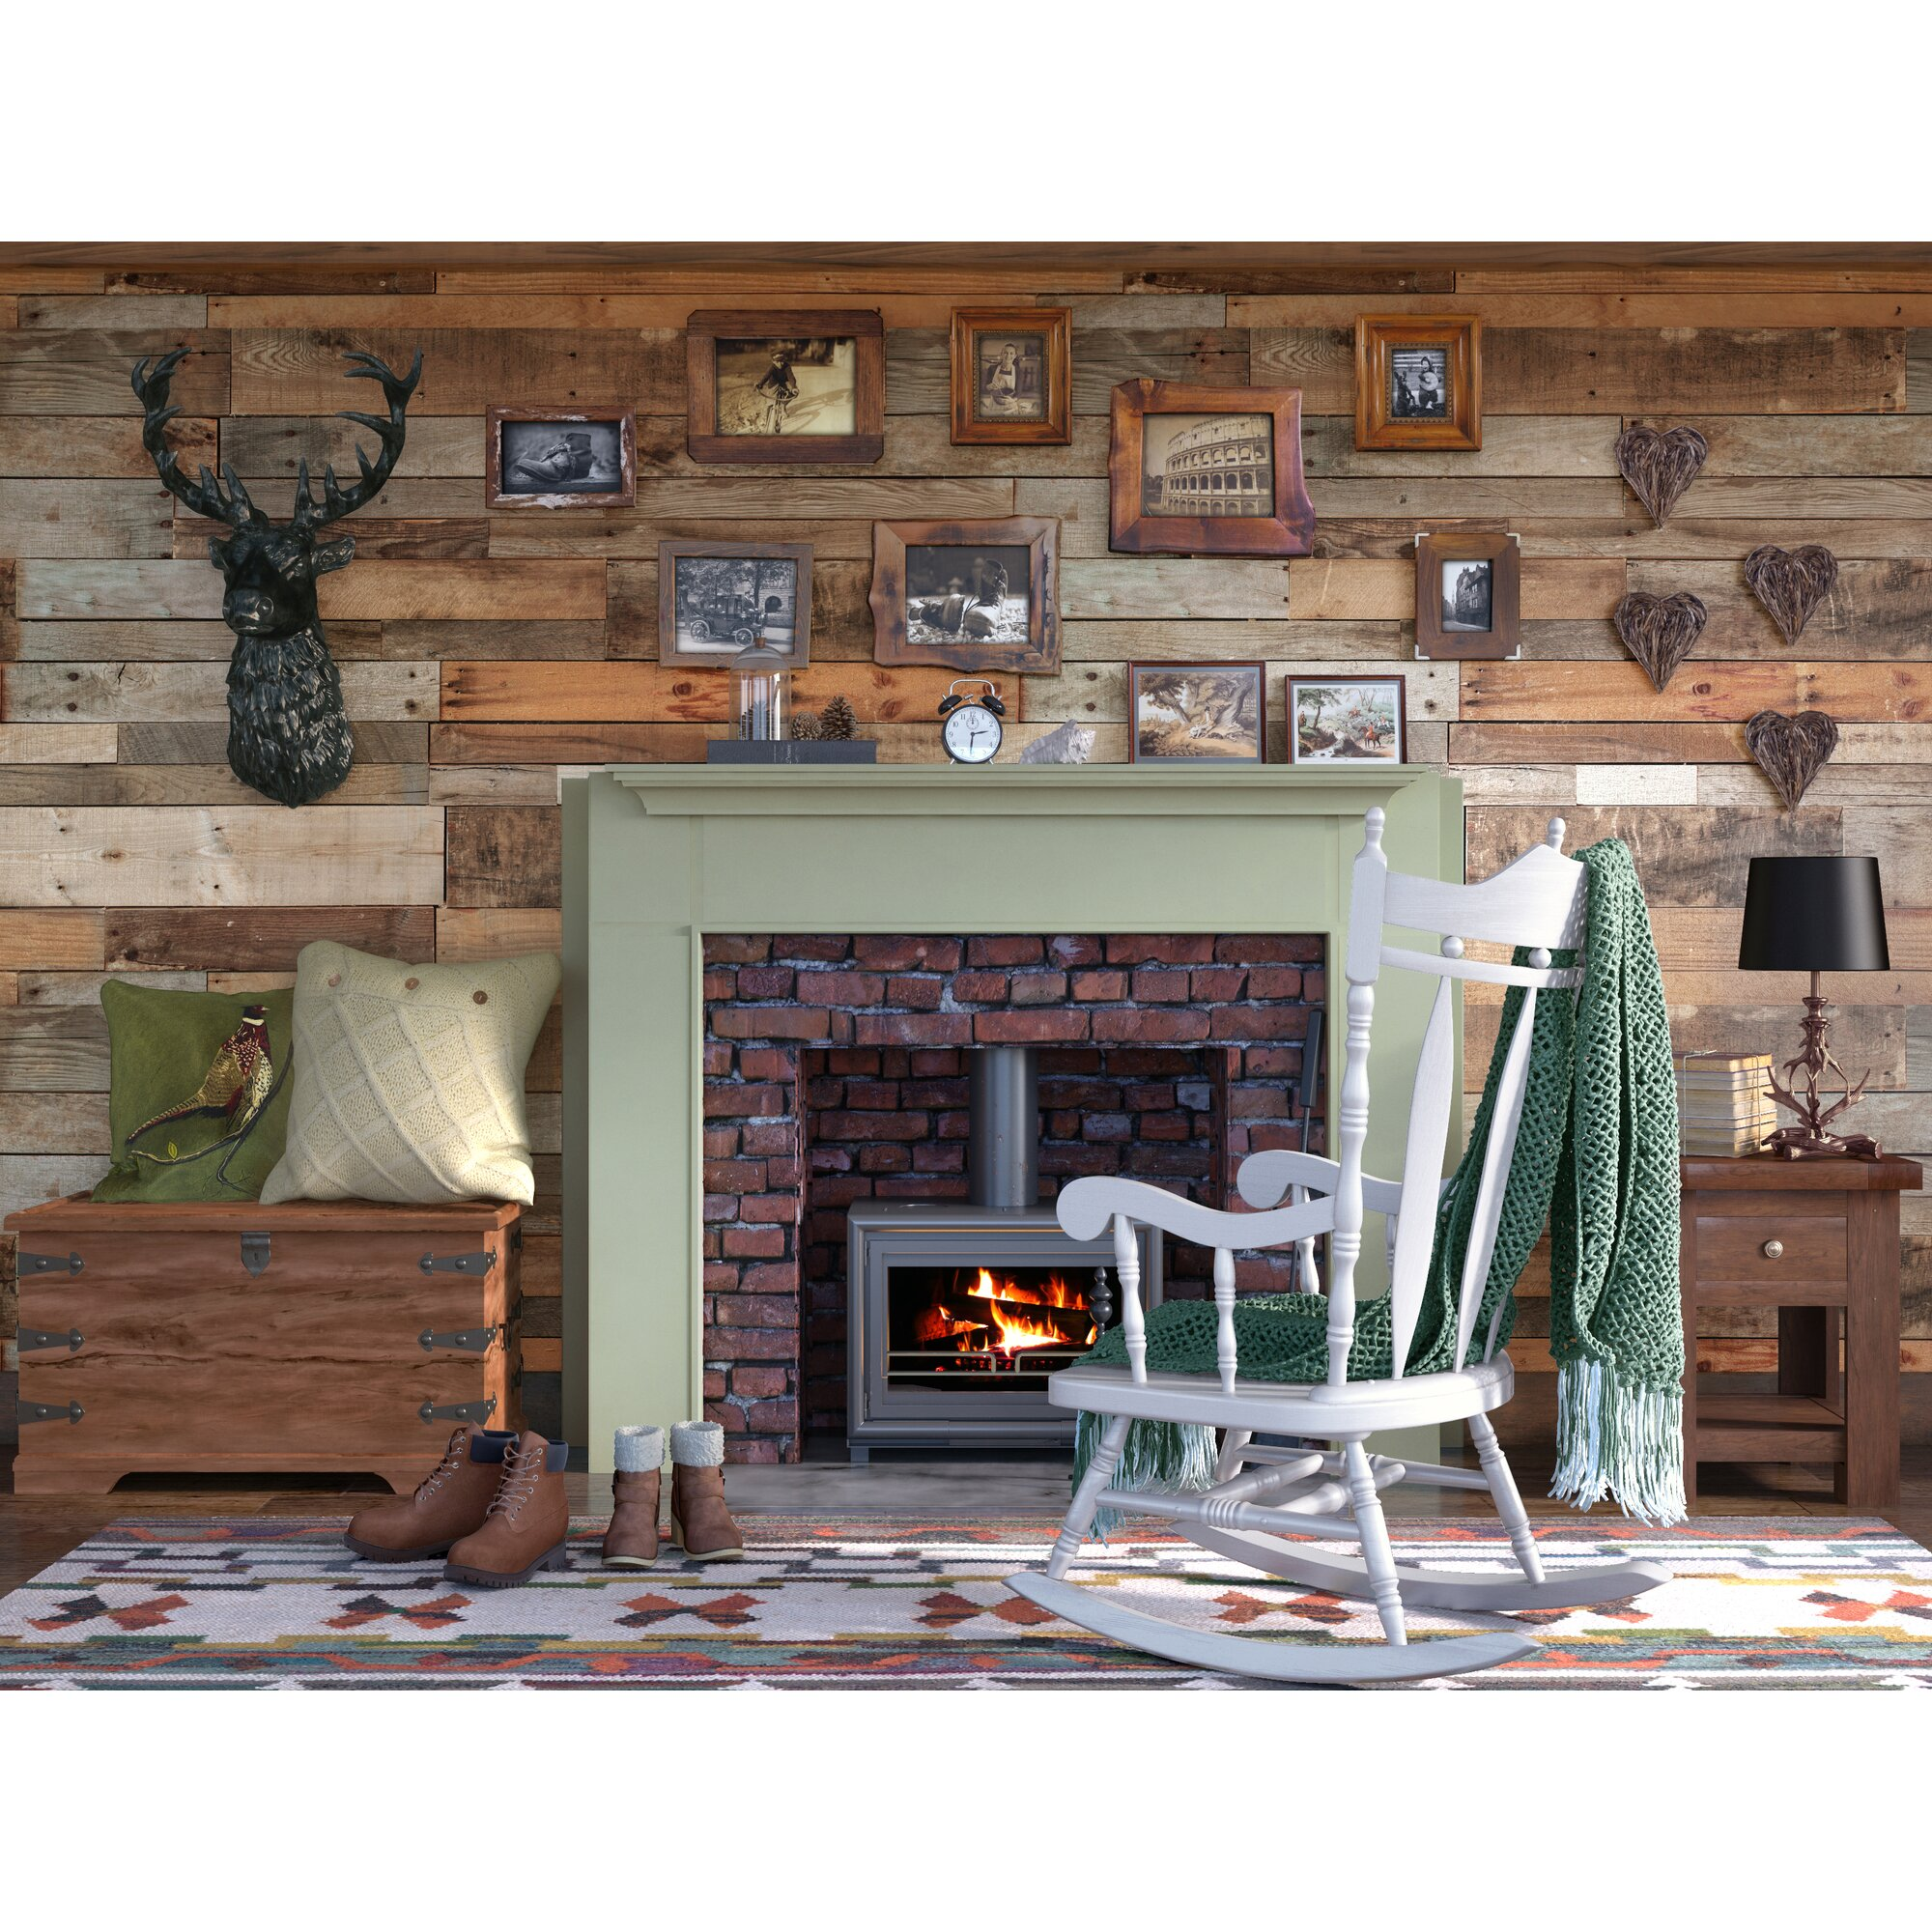 cushion for fireplace hearth part 23 how to baby proof a